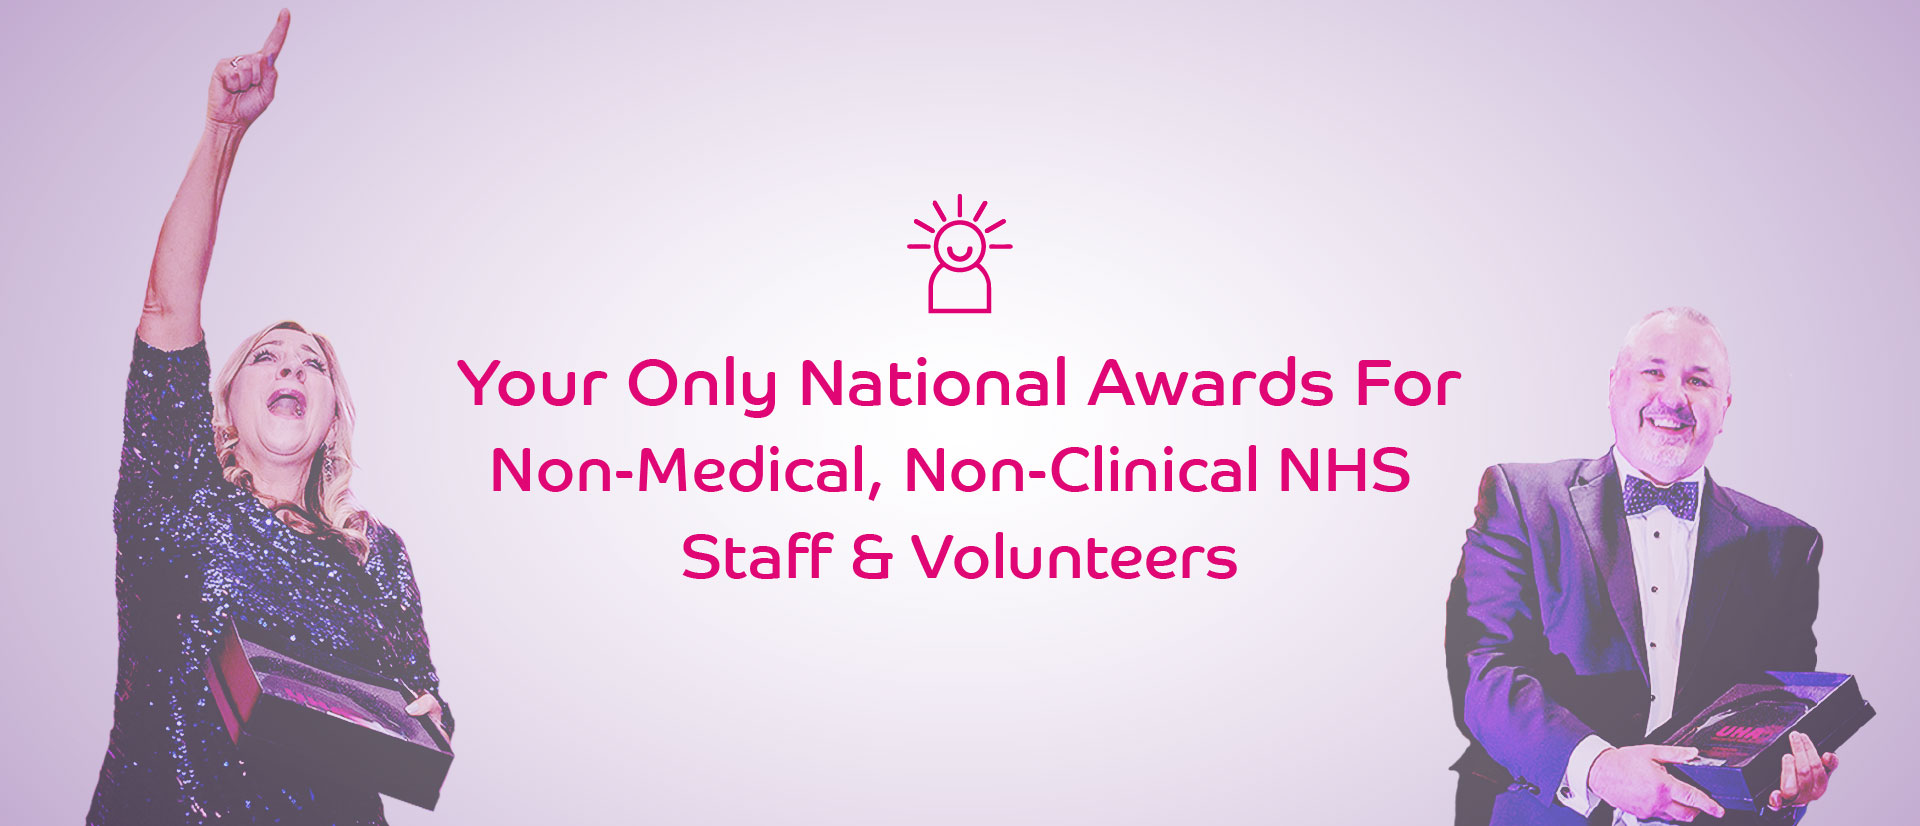 Your National Awards For Non-medical NHS Unsung Heroes